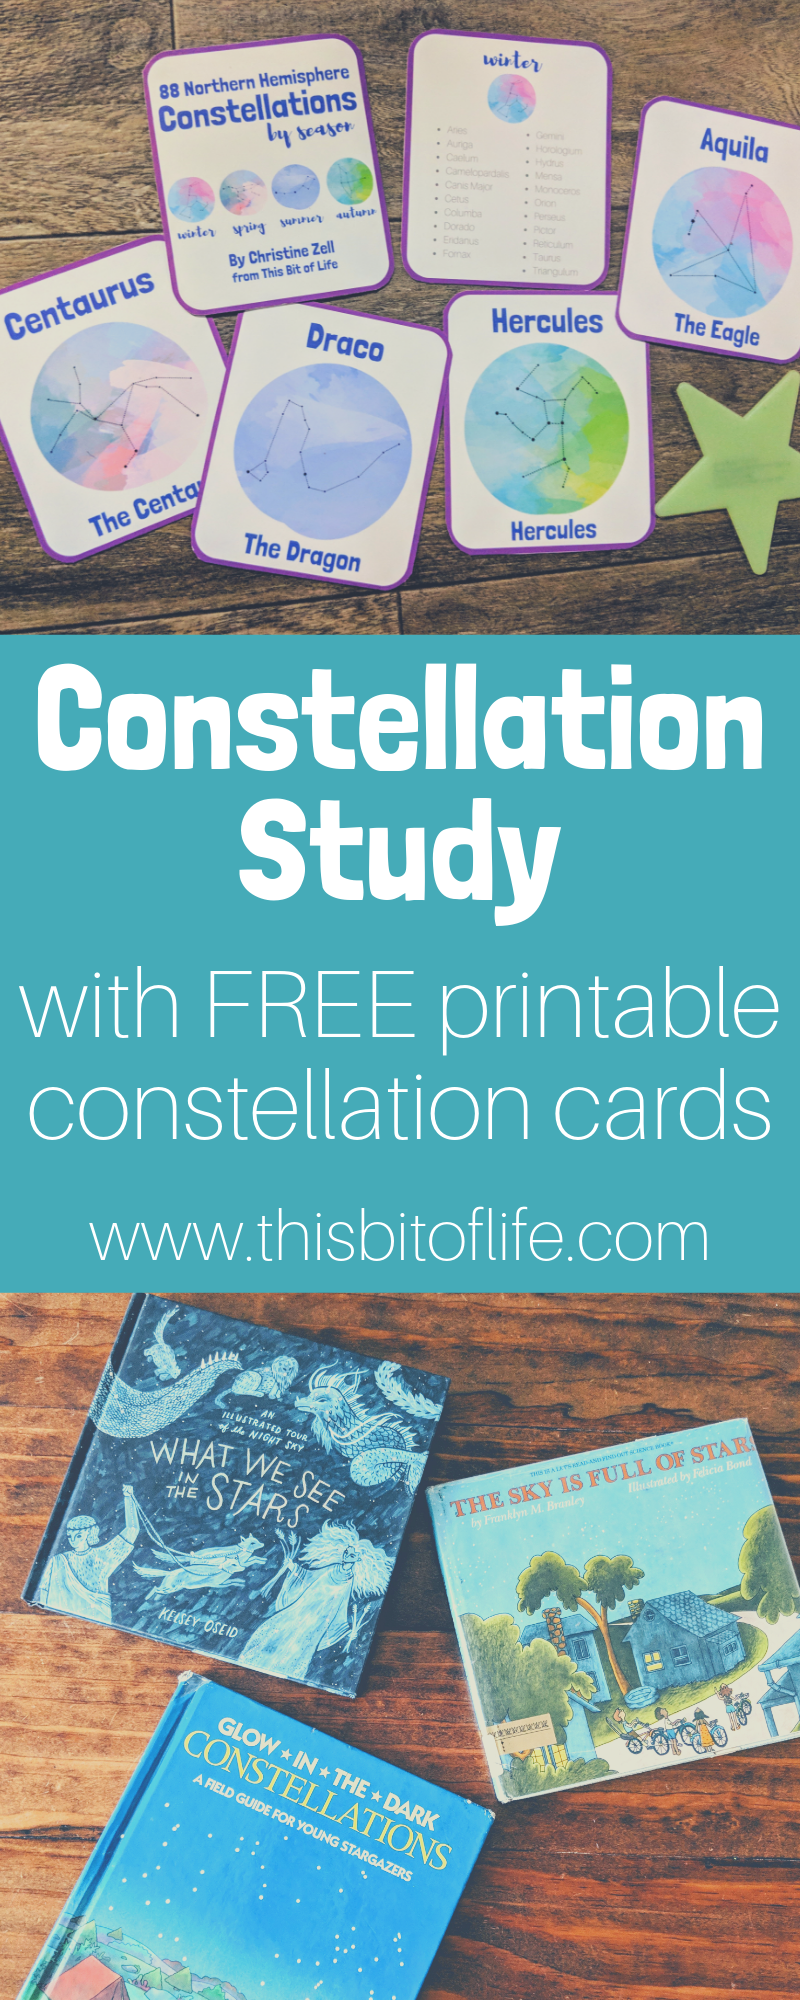 Photo of Free Rabbit Trails Constellation Study and Constellation Cards Printable – This Bit of Life